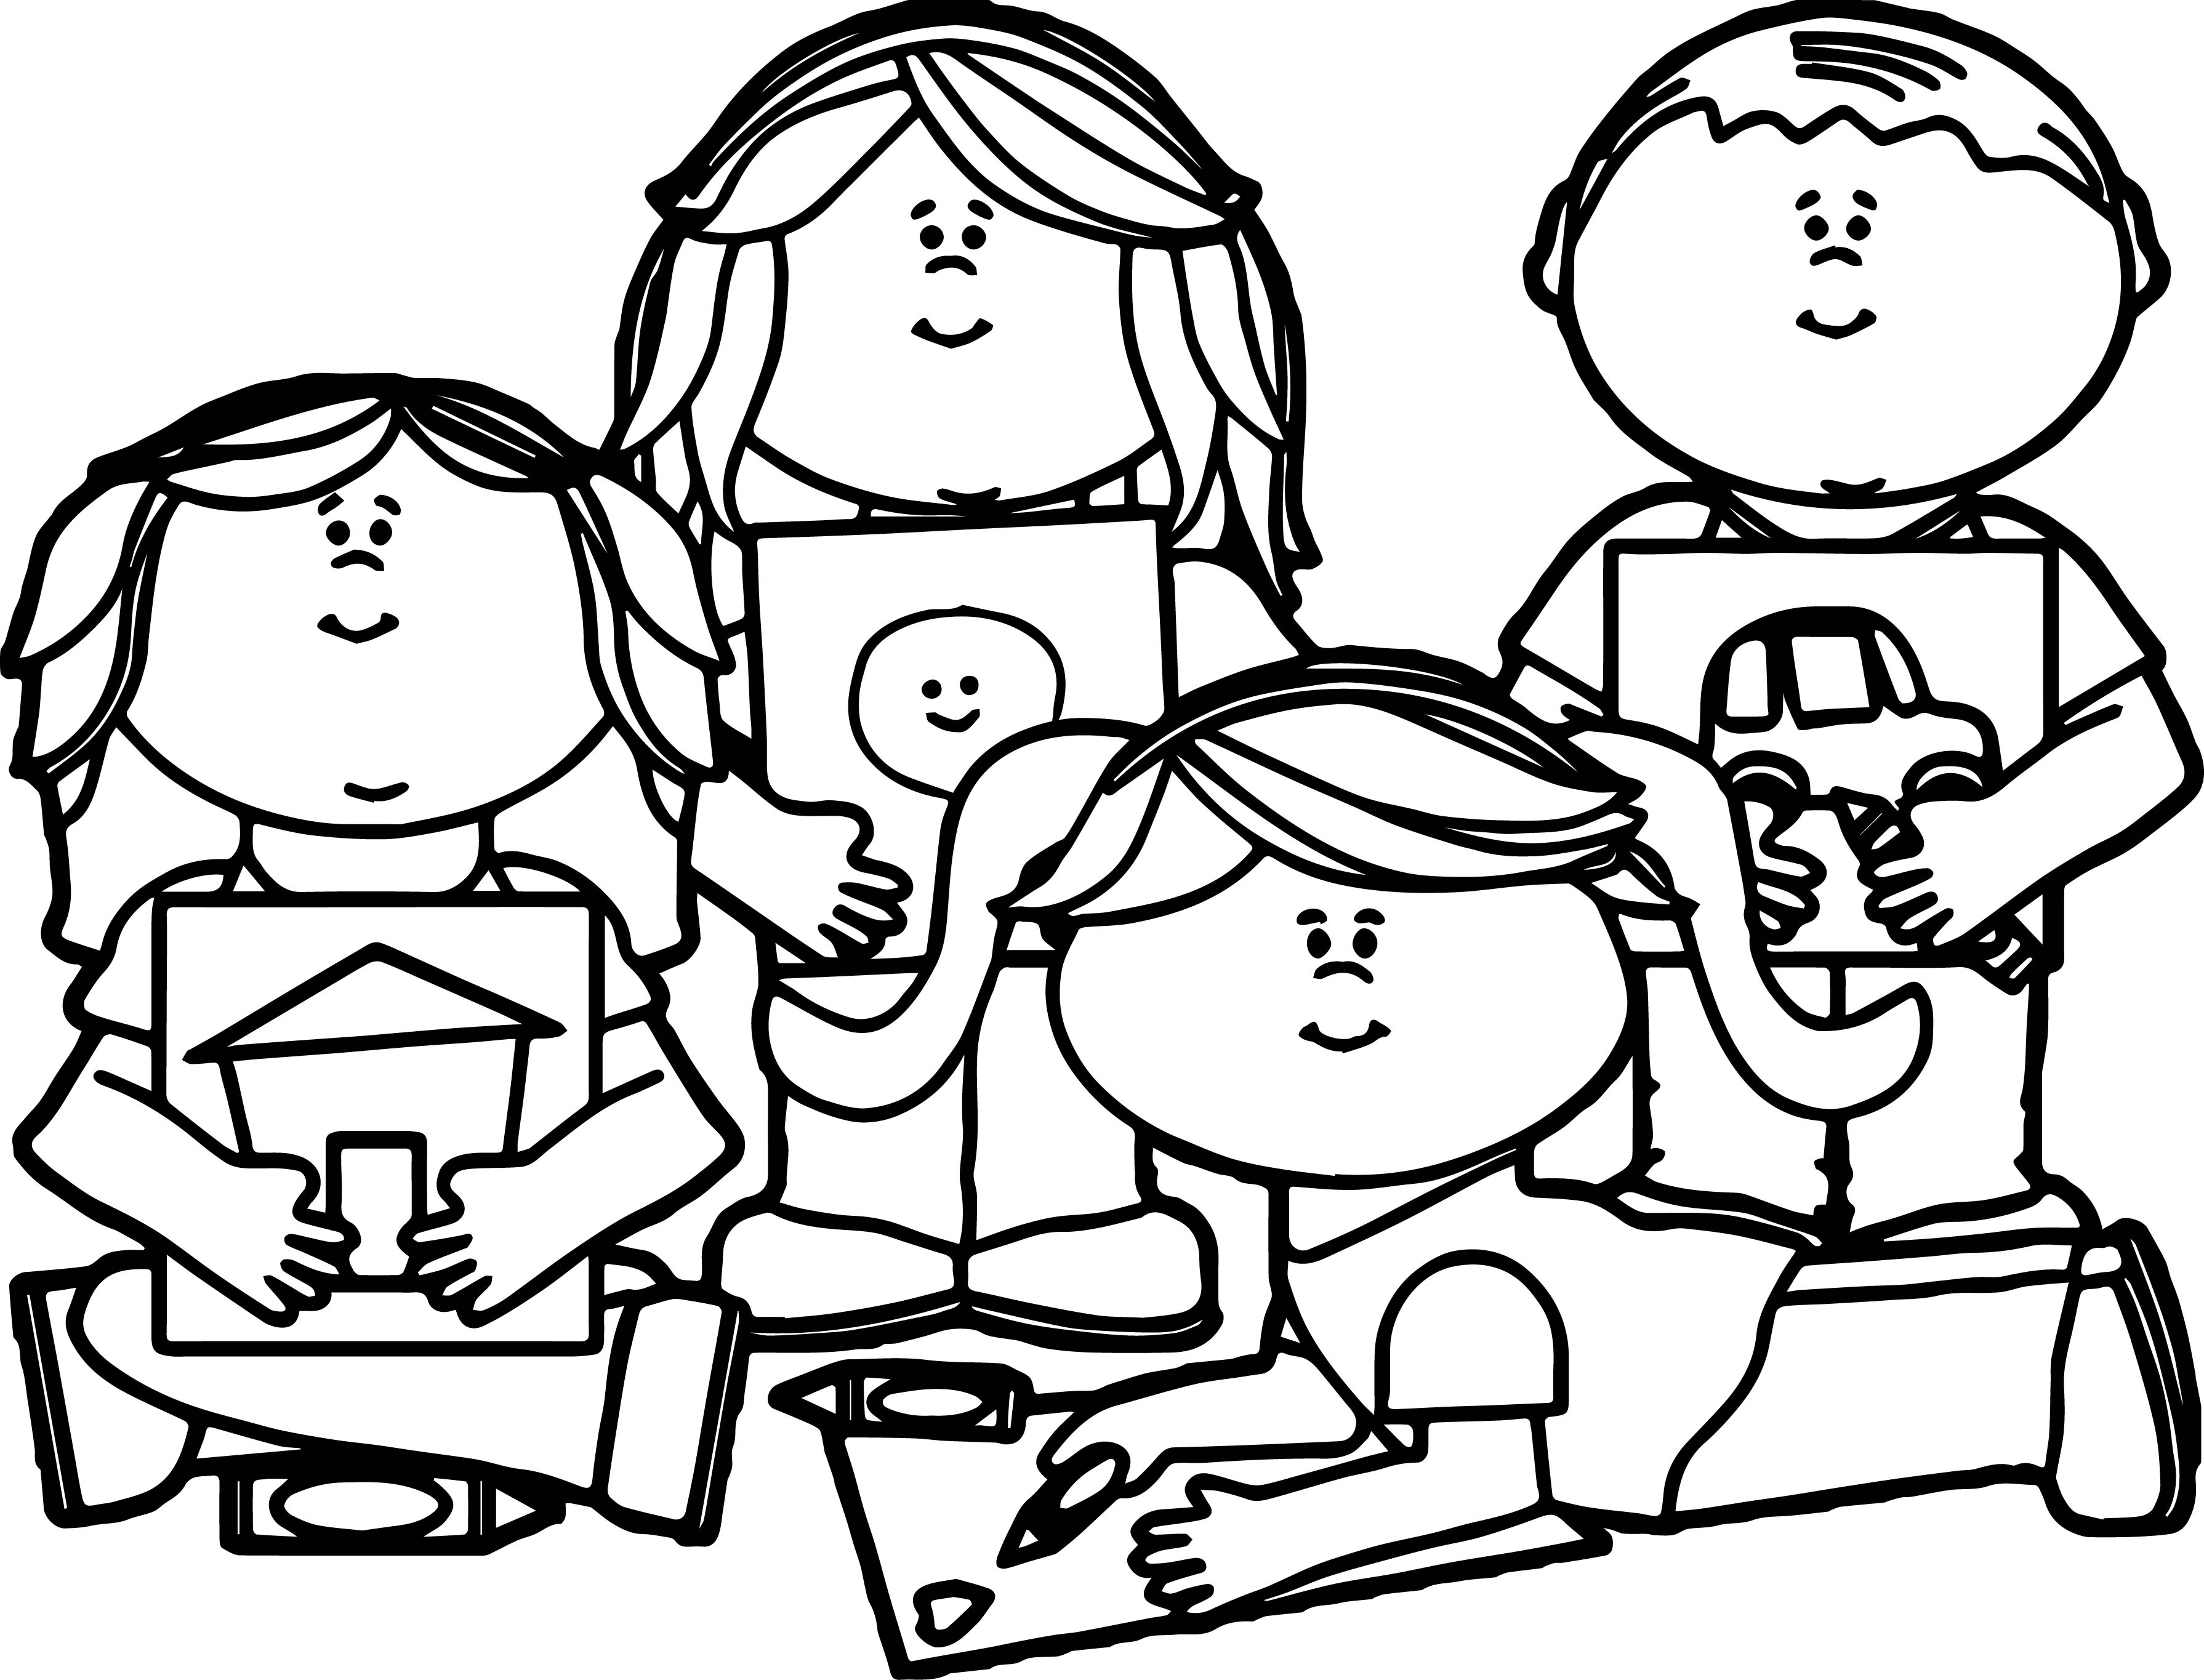 Collection of Kids coloring clipart.